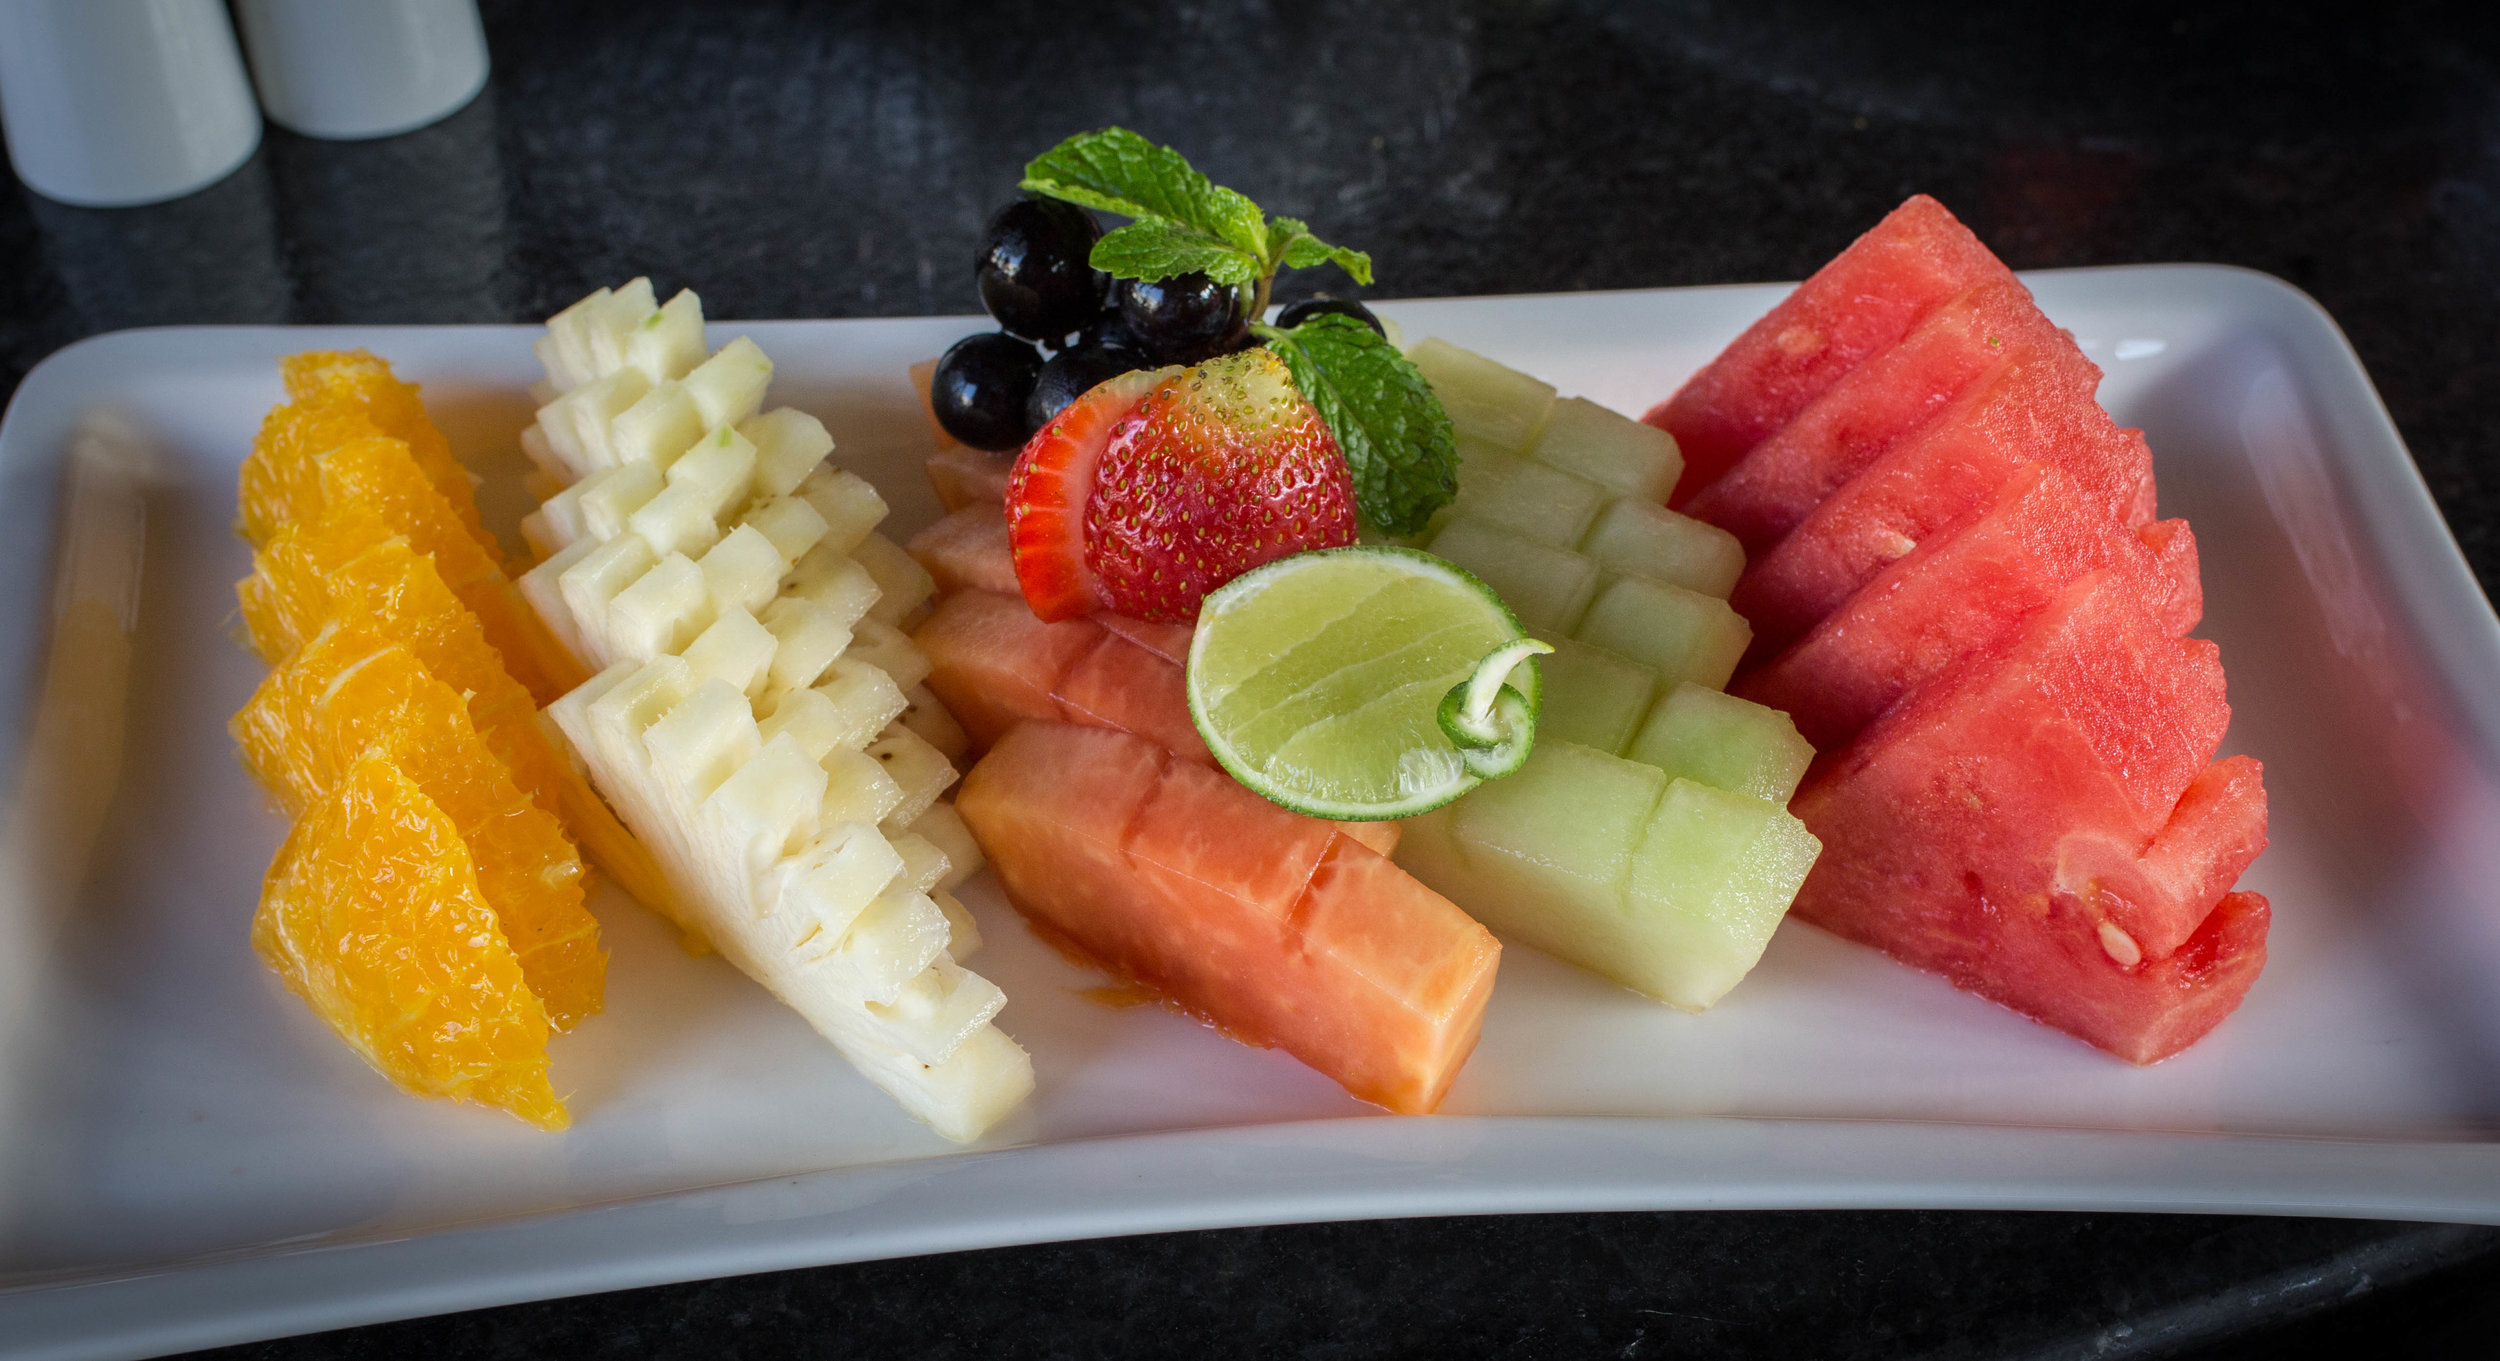 Fruit plate Mantra 2 (1 of 1).jpg